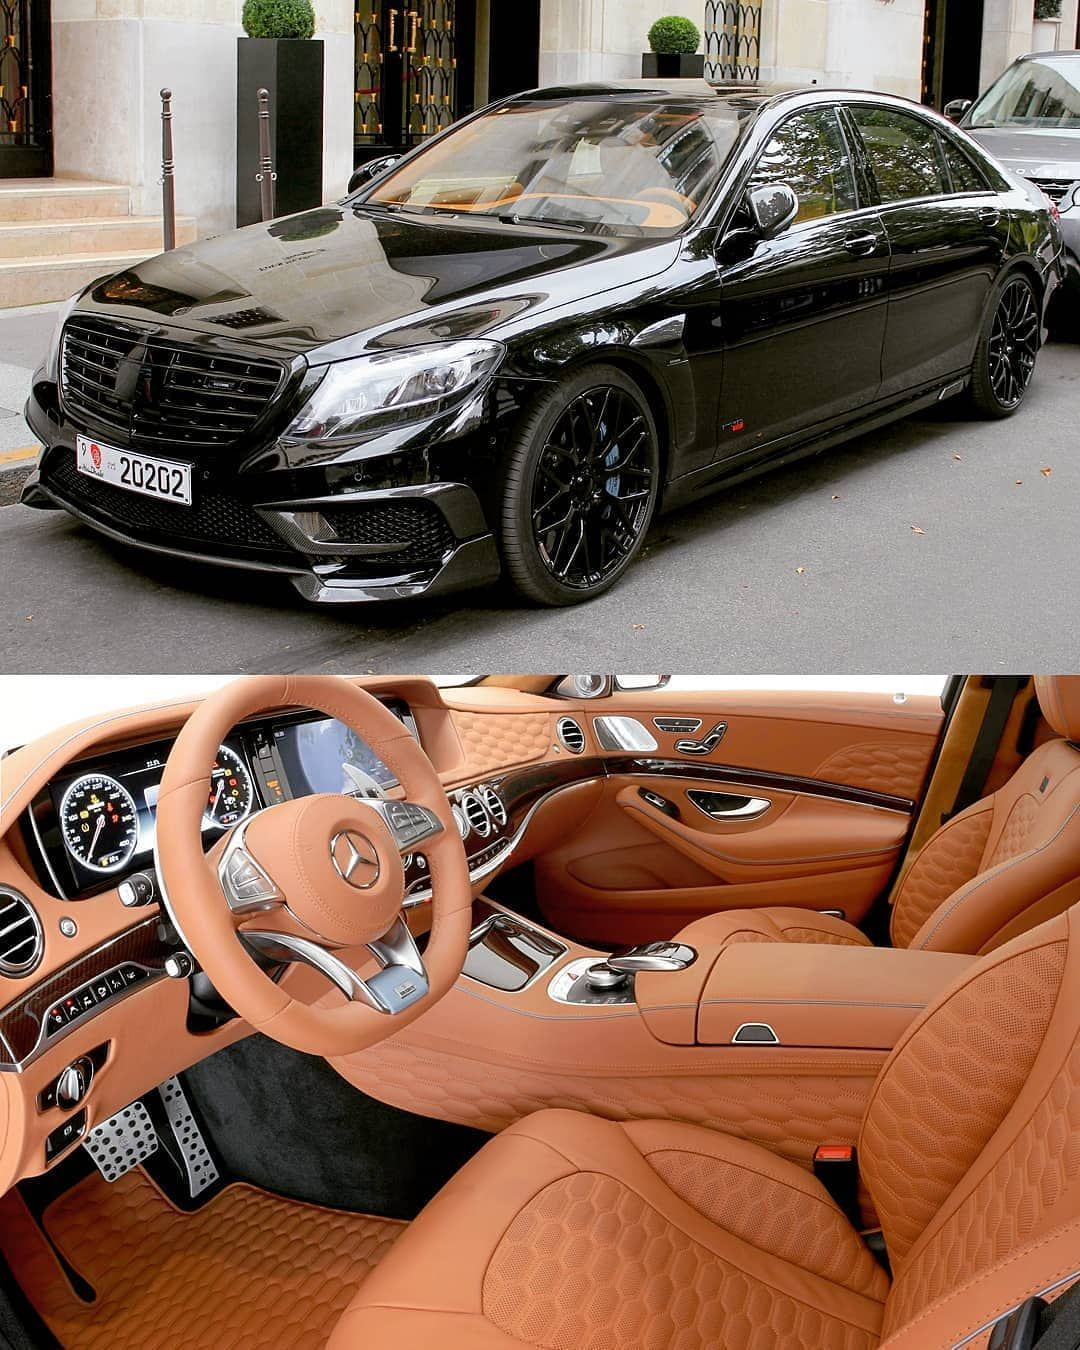 Mercedes Benz S Class Brabus 850hp Follow Uber Luxury For More